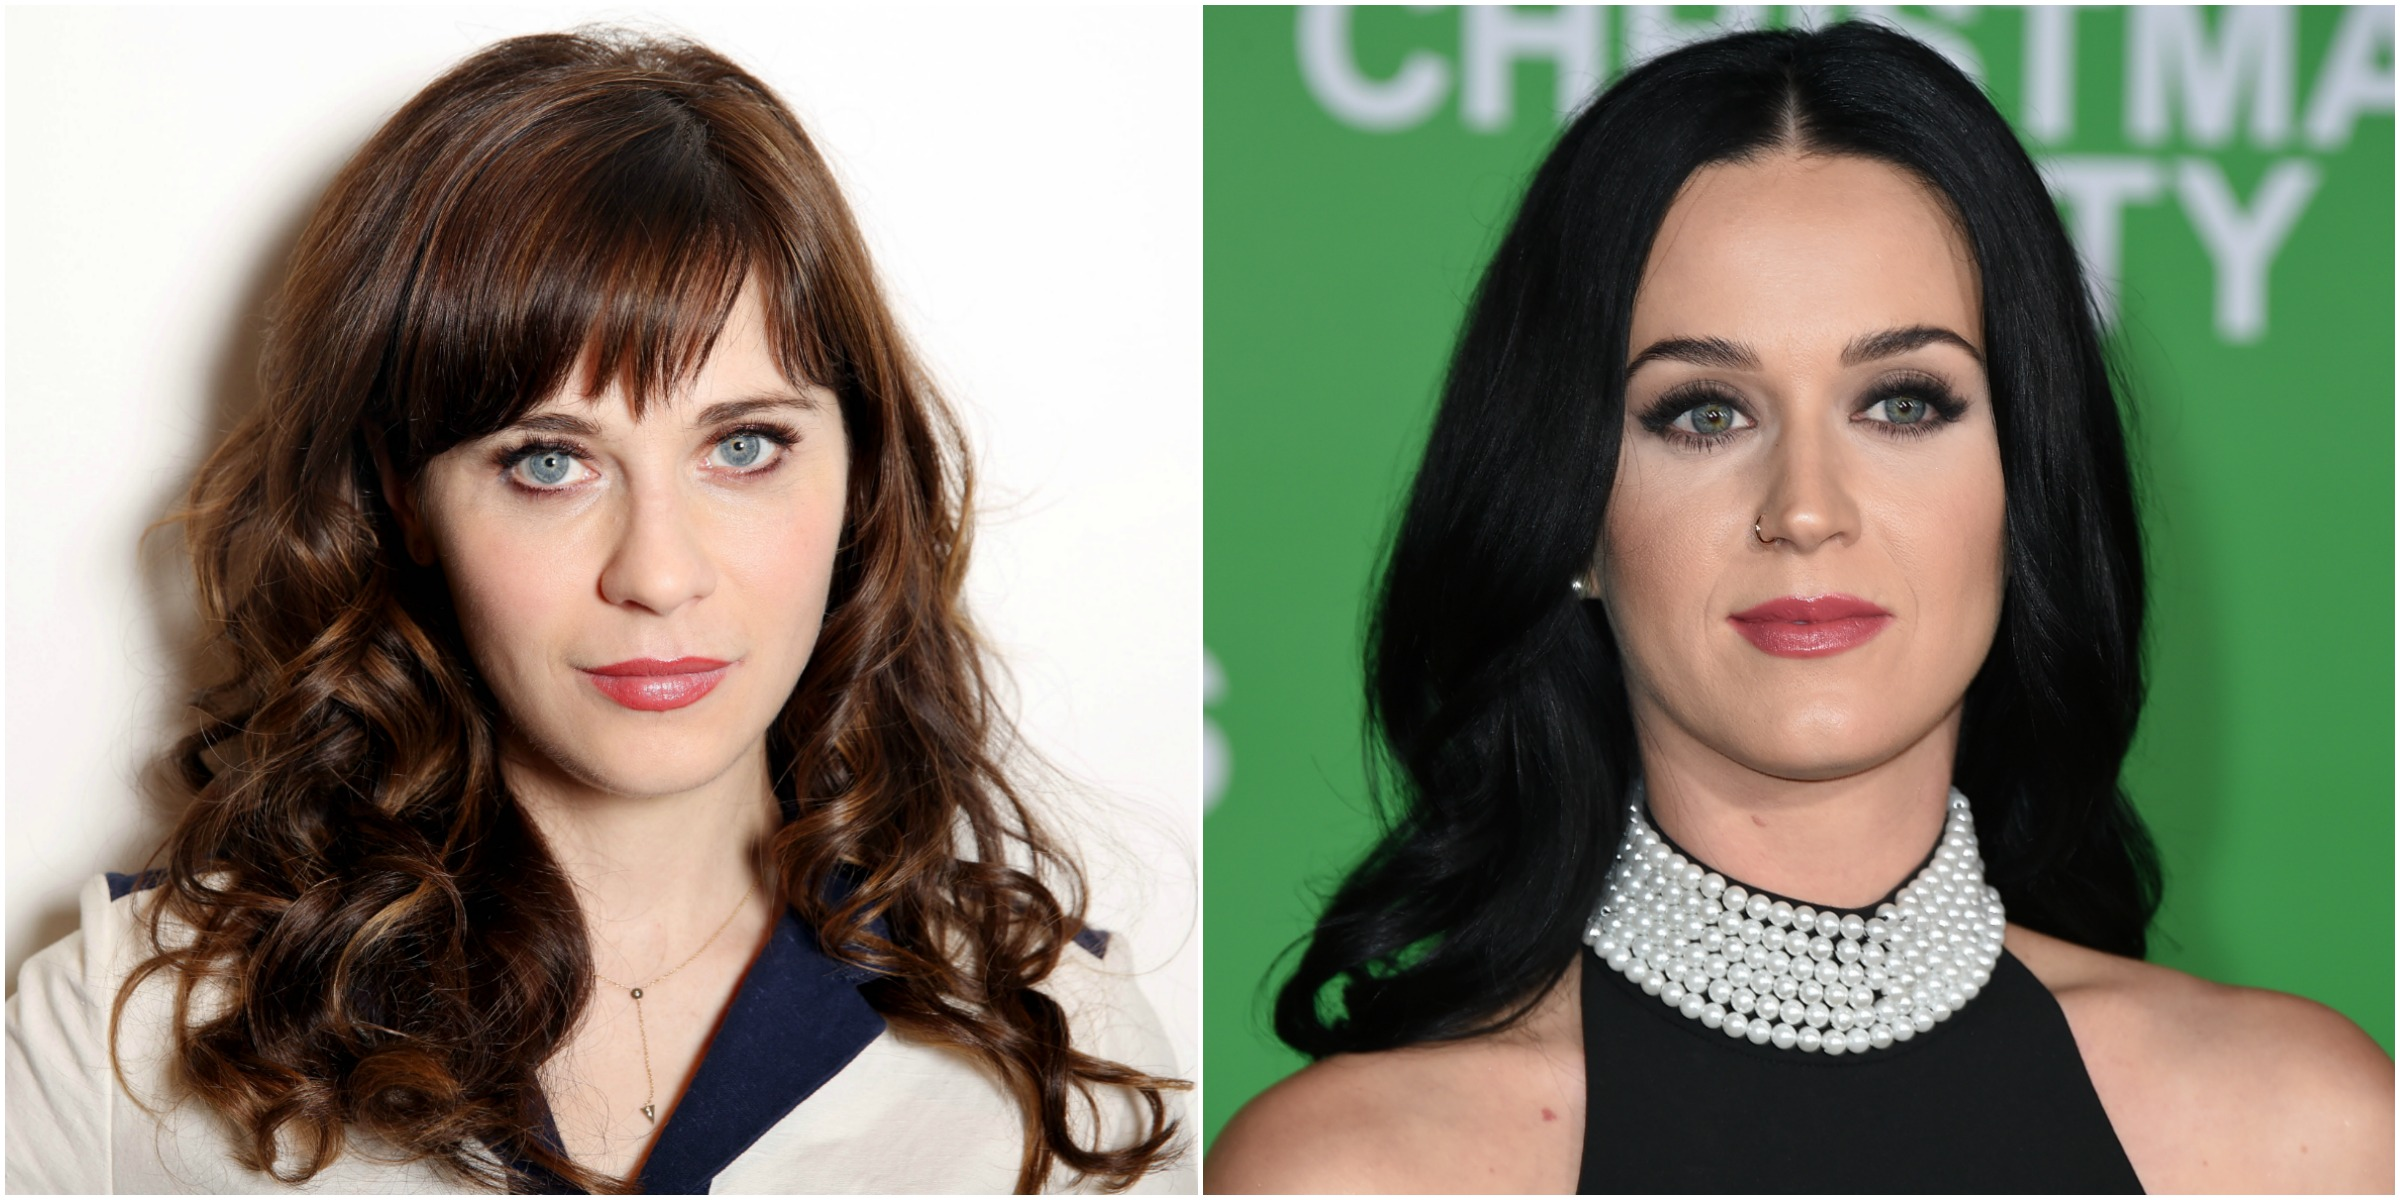 We mix them up sometimes: actors who look very much alike